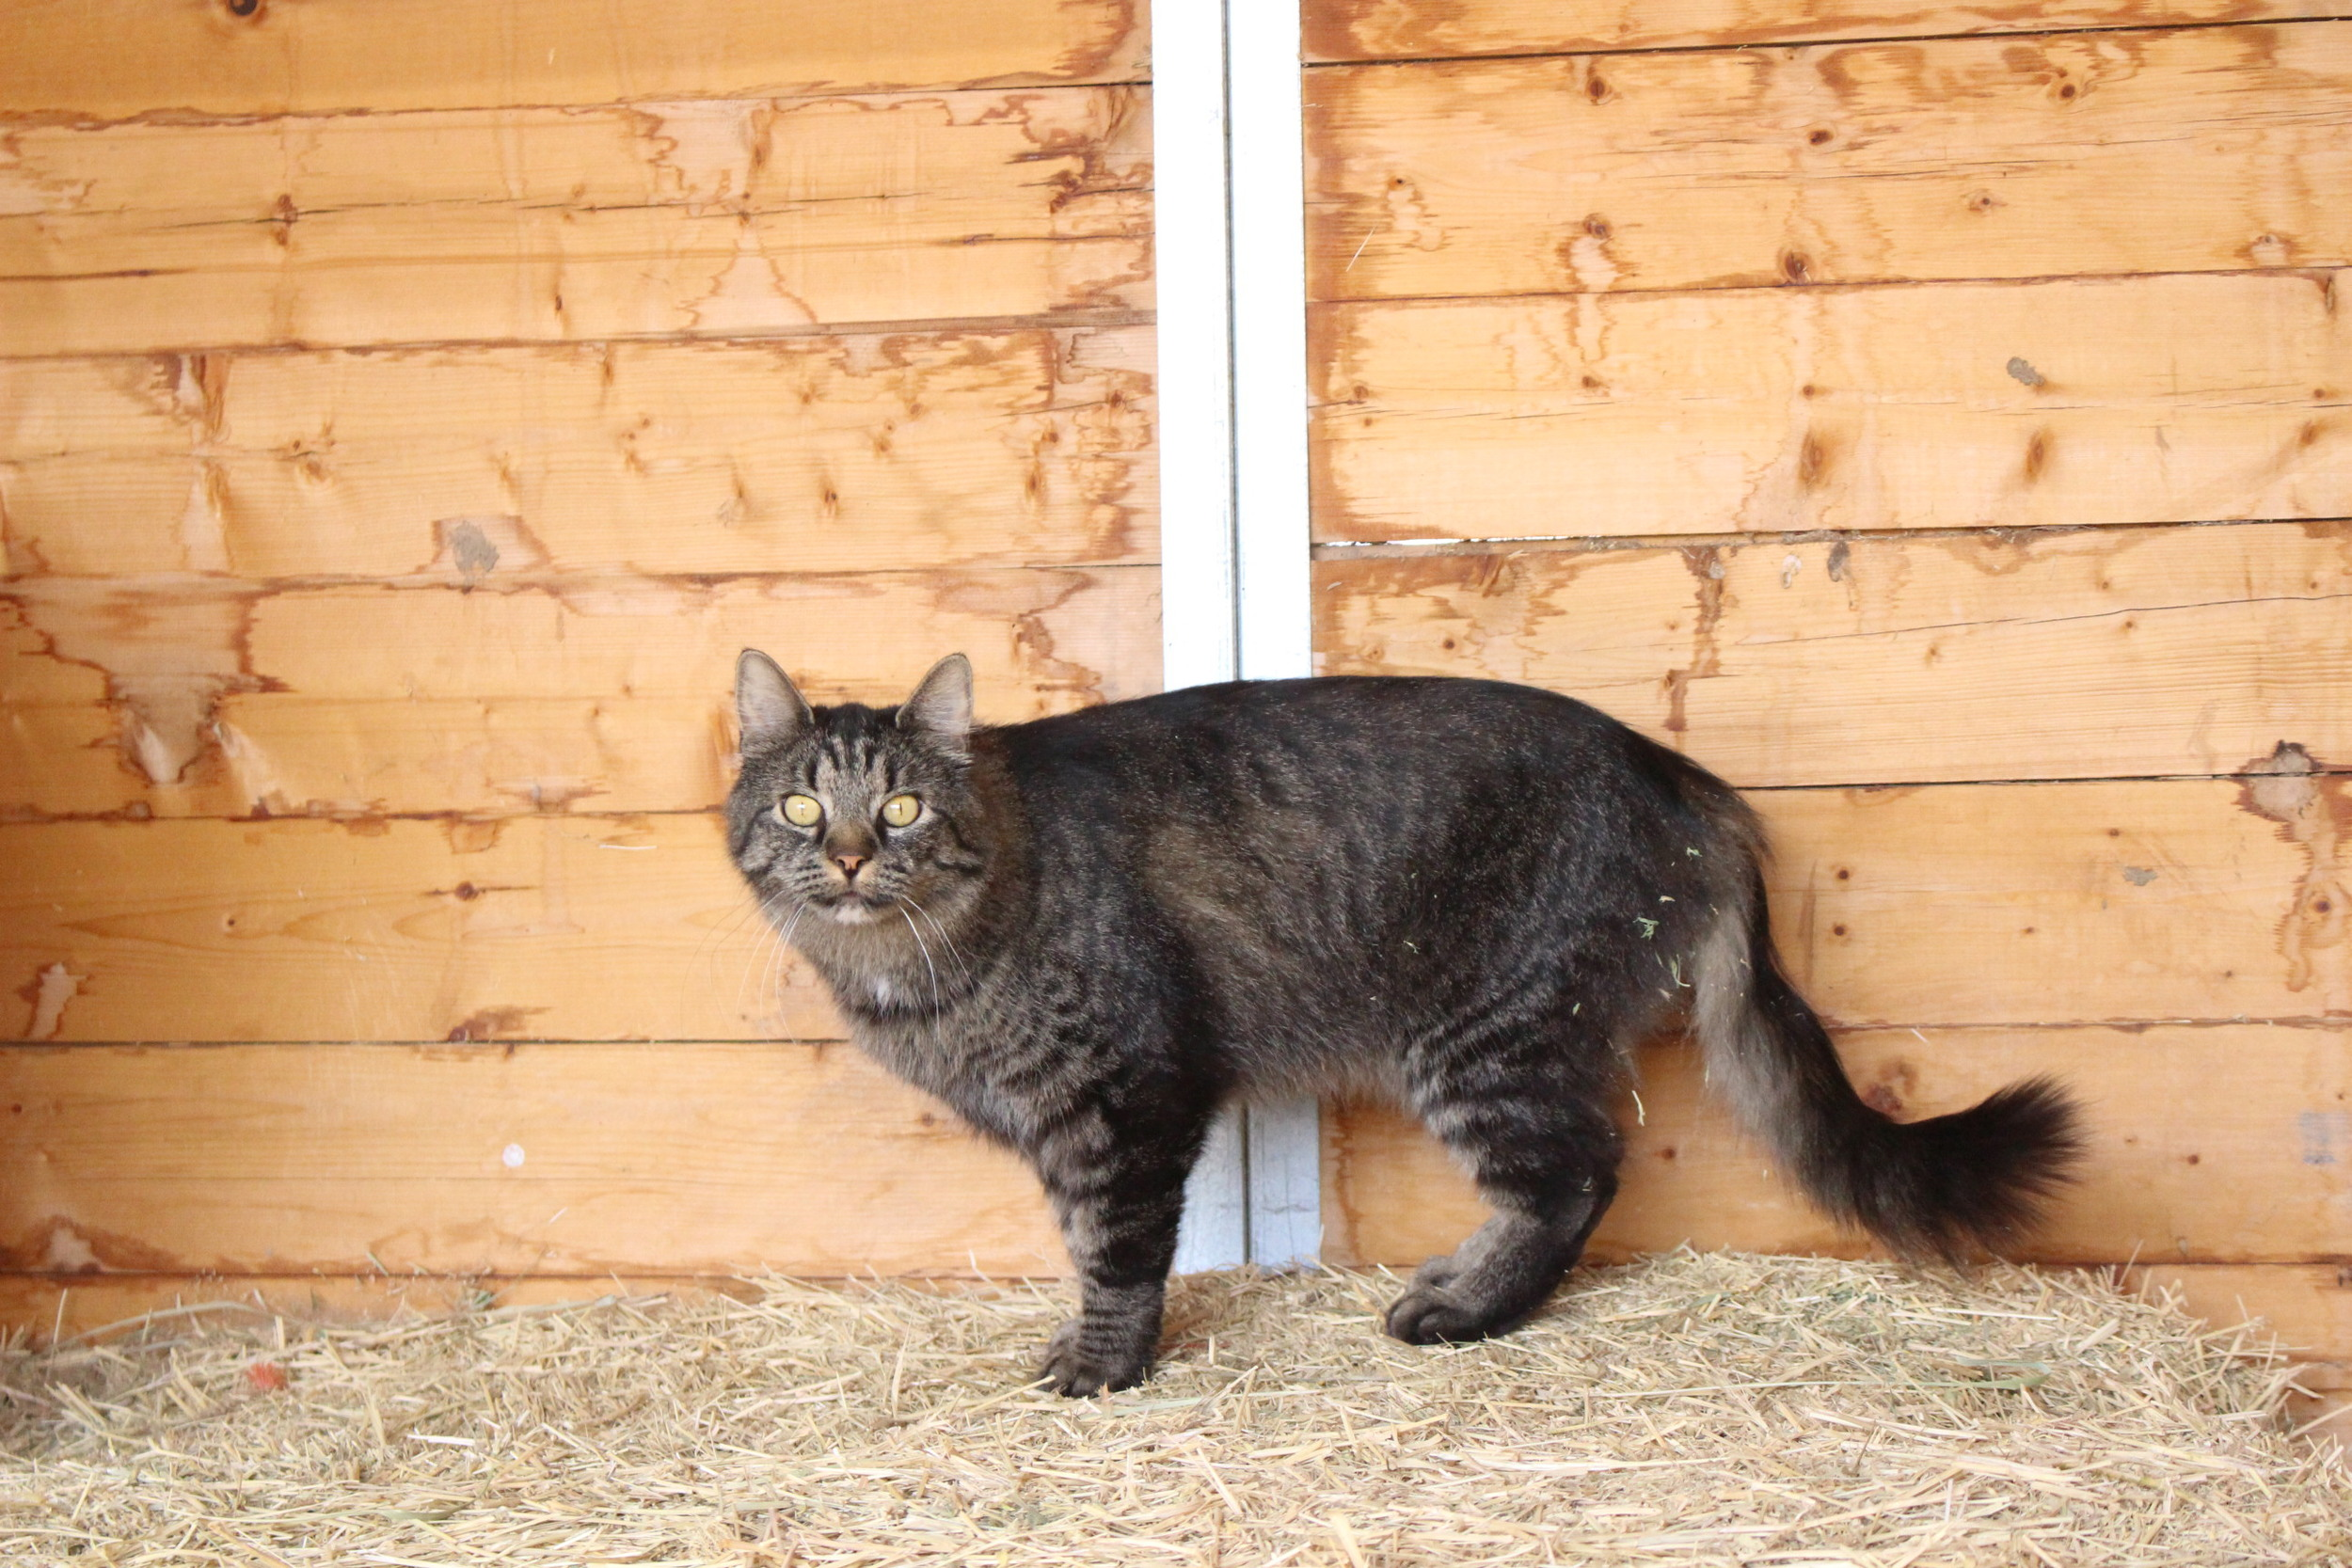 Rascal, one of the barn cats.